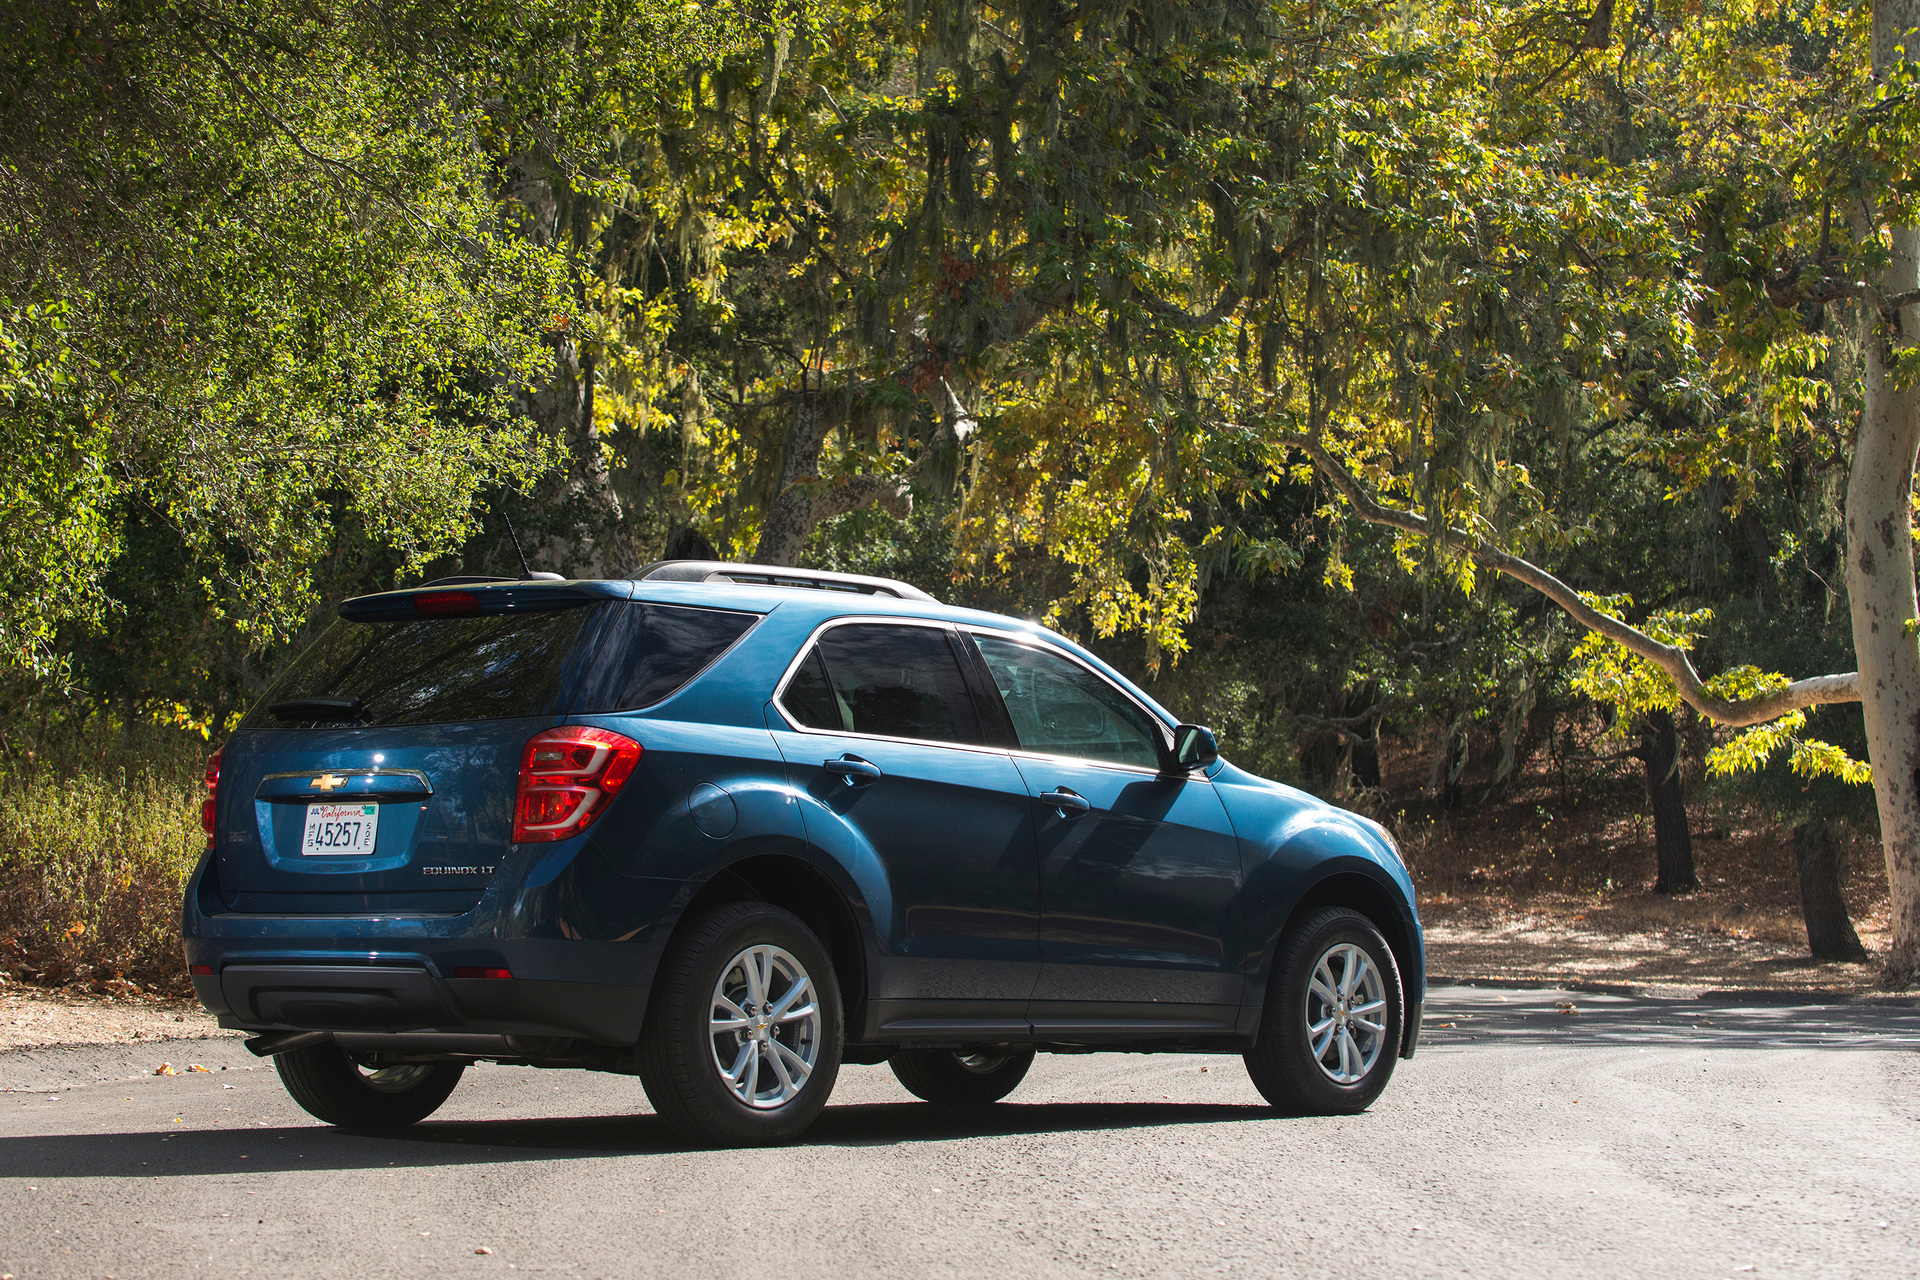 Best Affordable Compact SUVs for 2016-2017